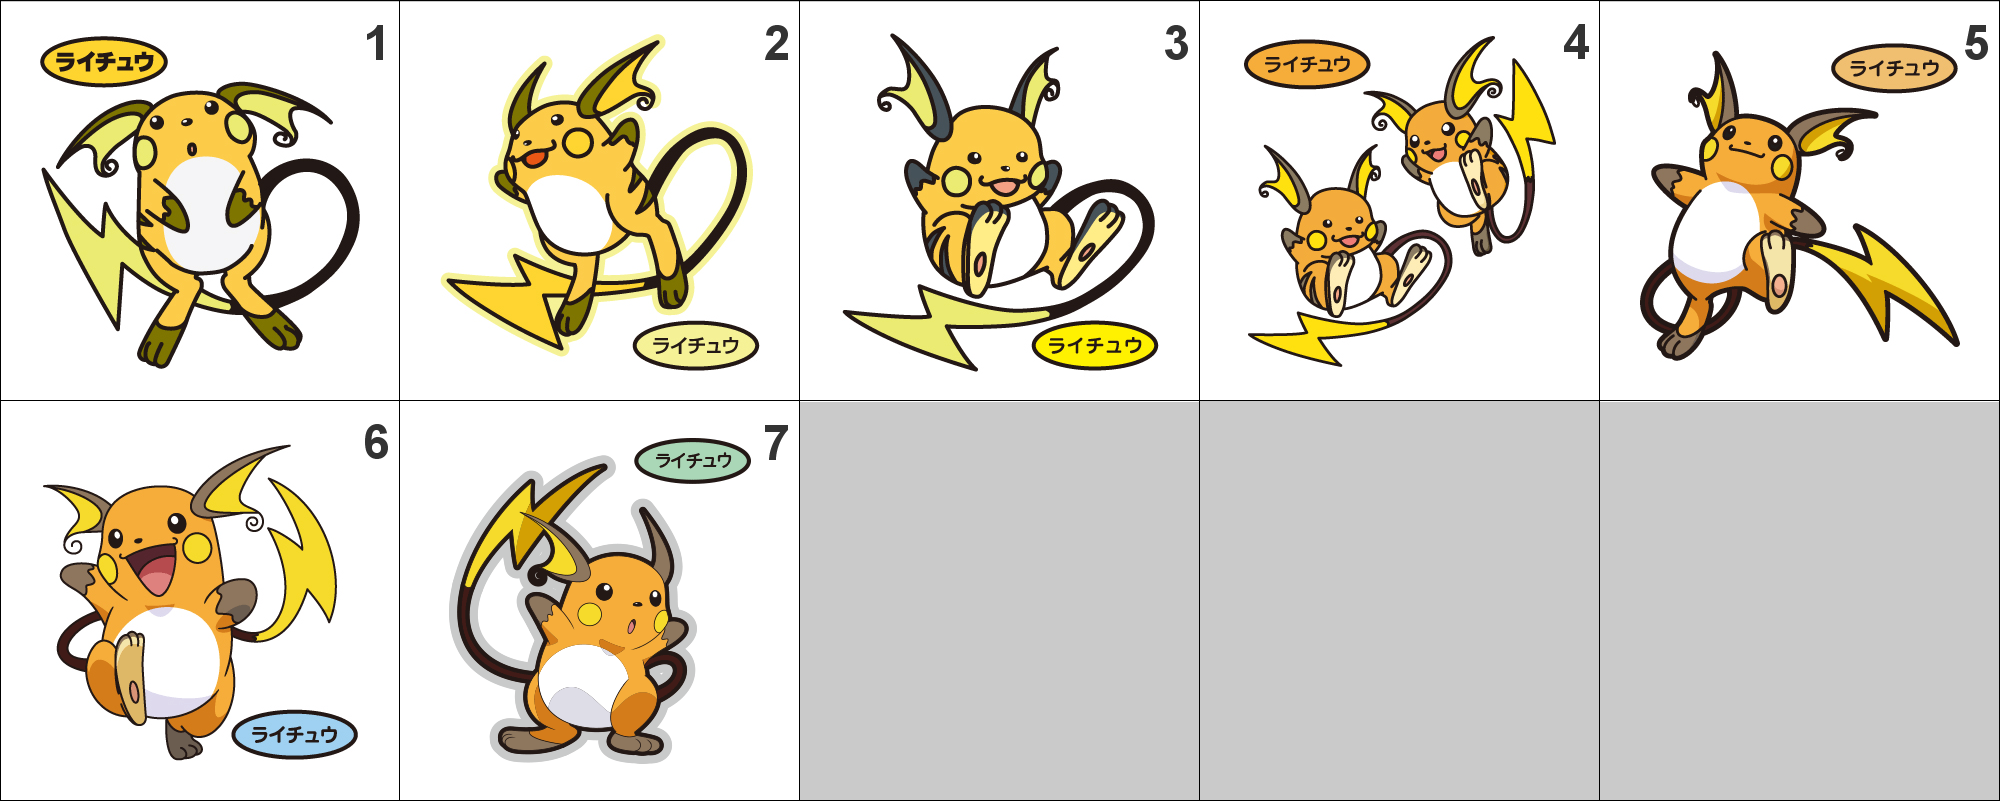 Raichu Pokemon Number Images